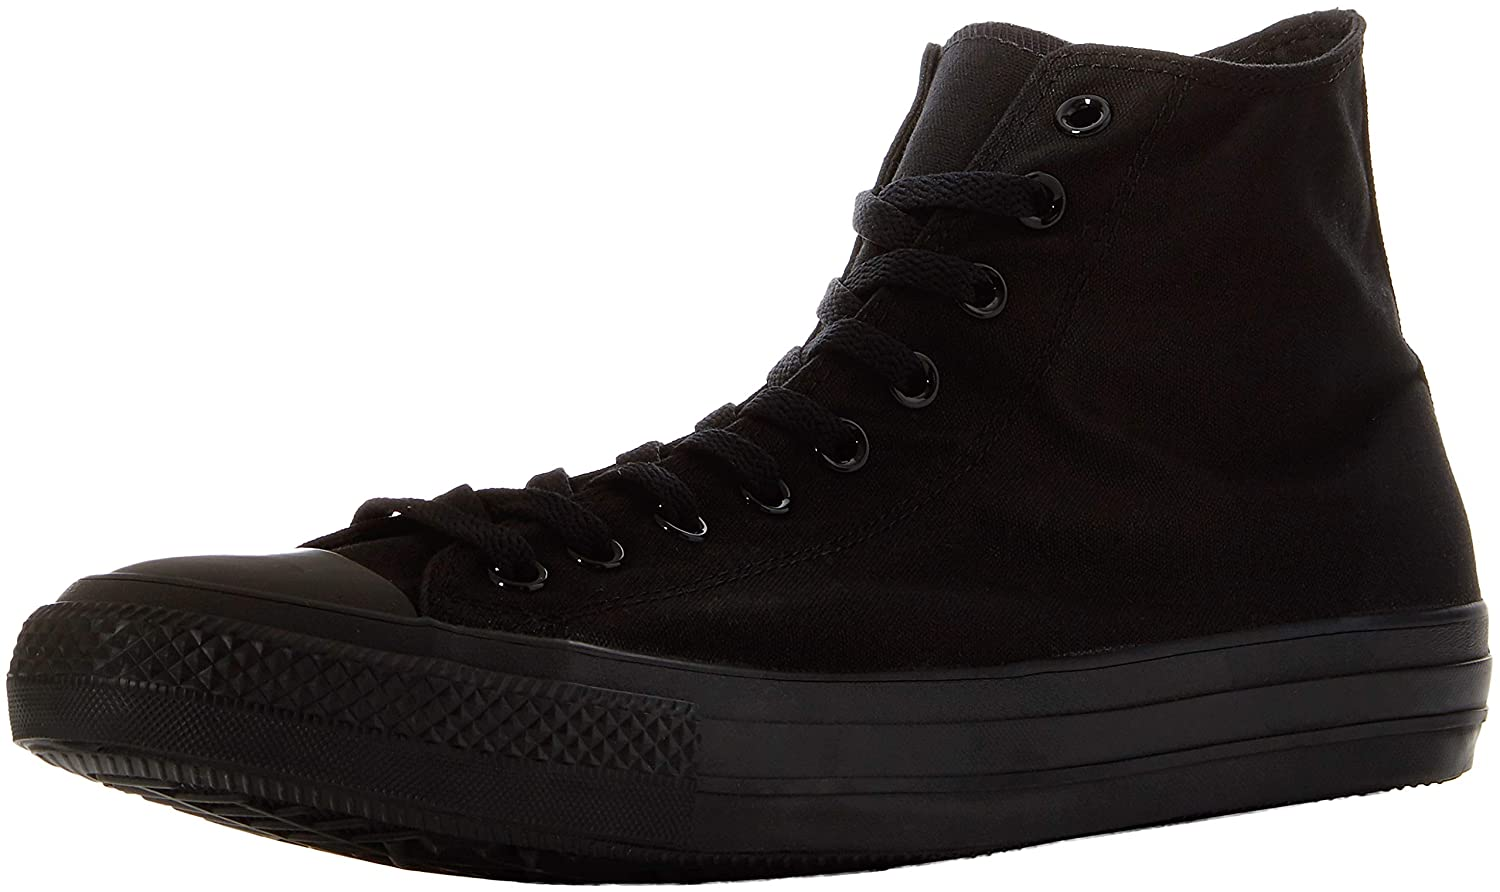 Converse Ctas Core Hi, Mono) Baskets adulte mode mixte adulte Noir Hi, (Noir Mono) 1f2efe0 - piero.space